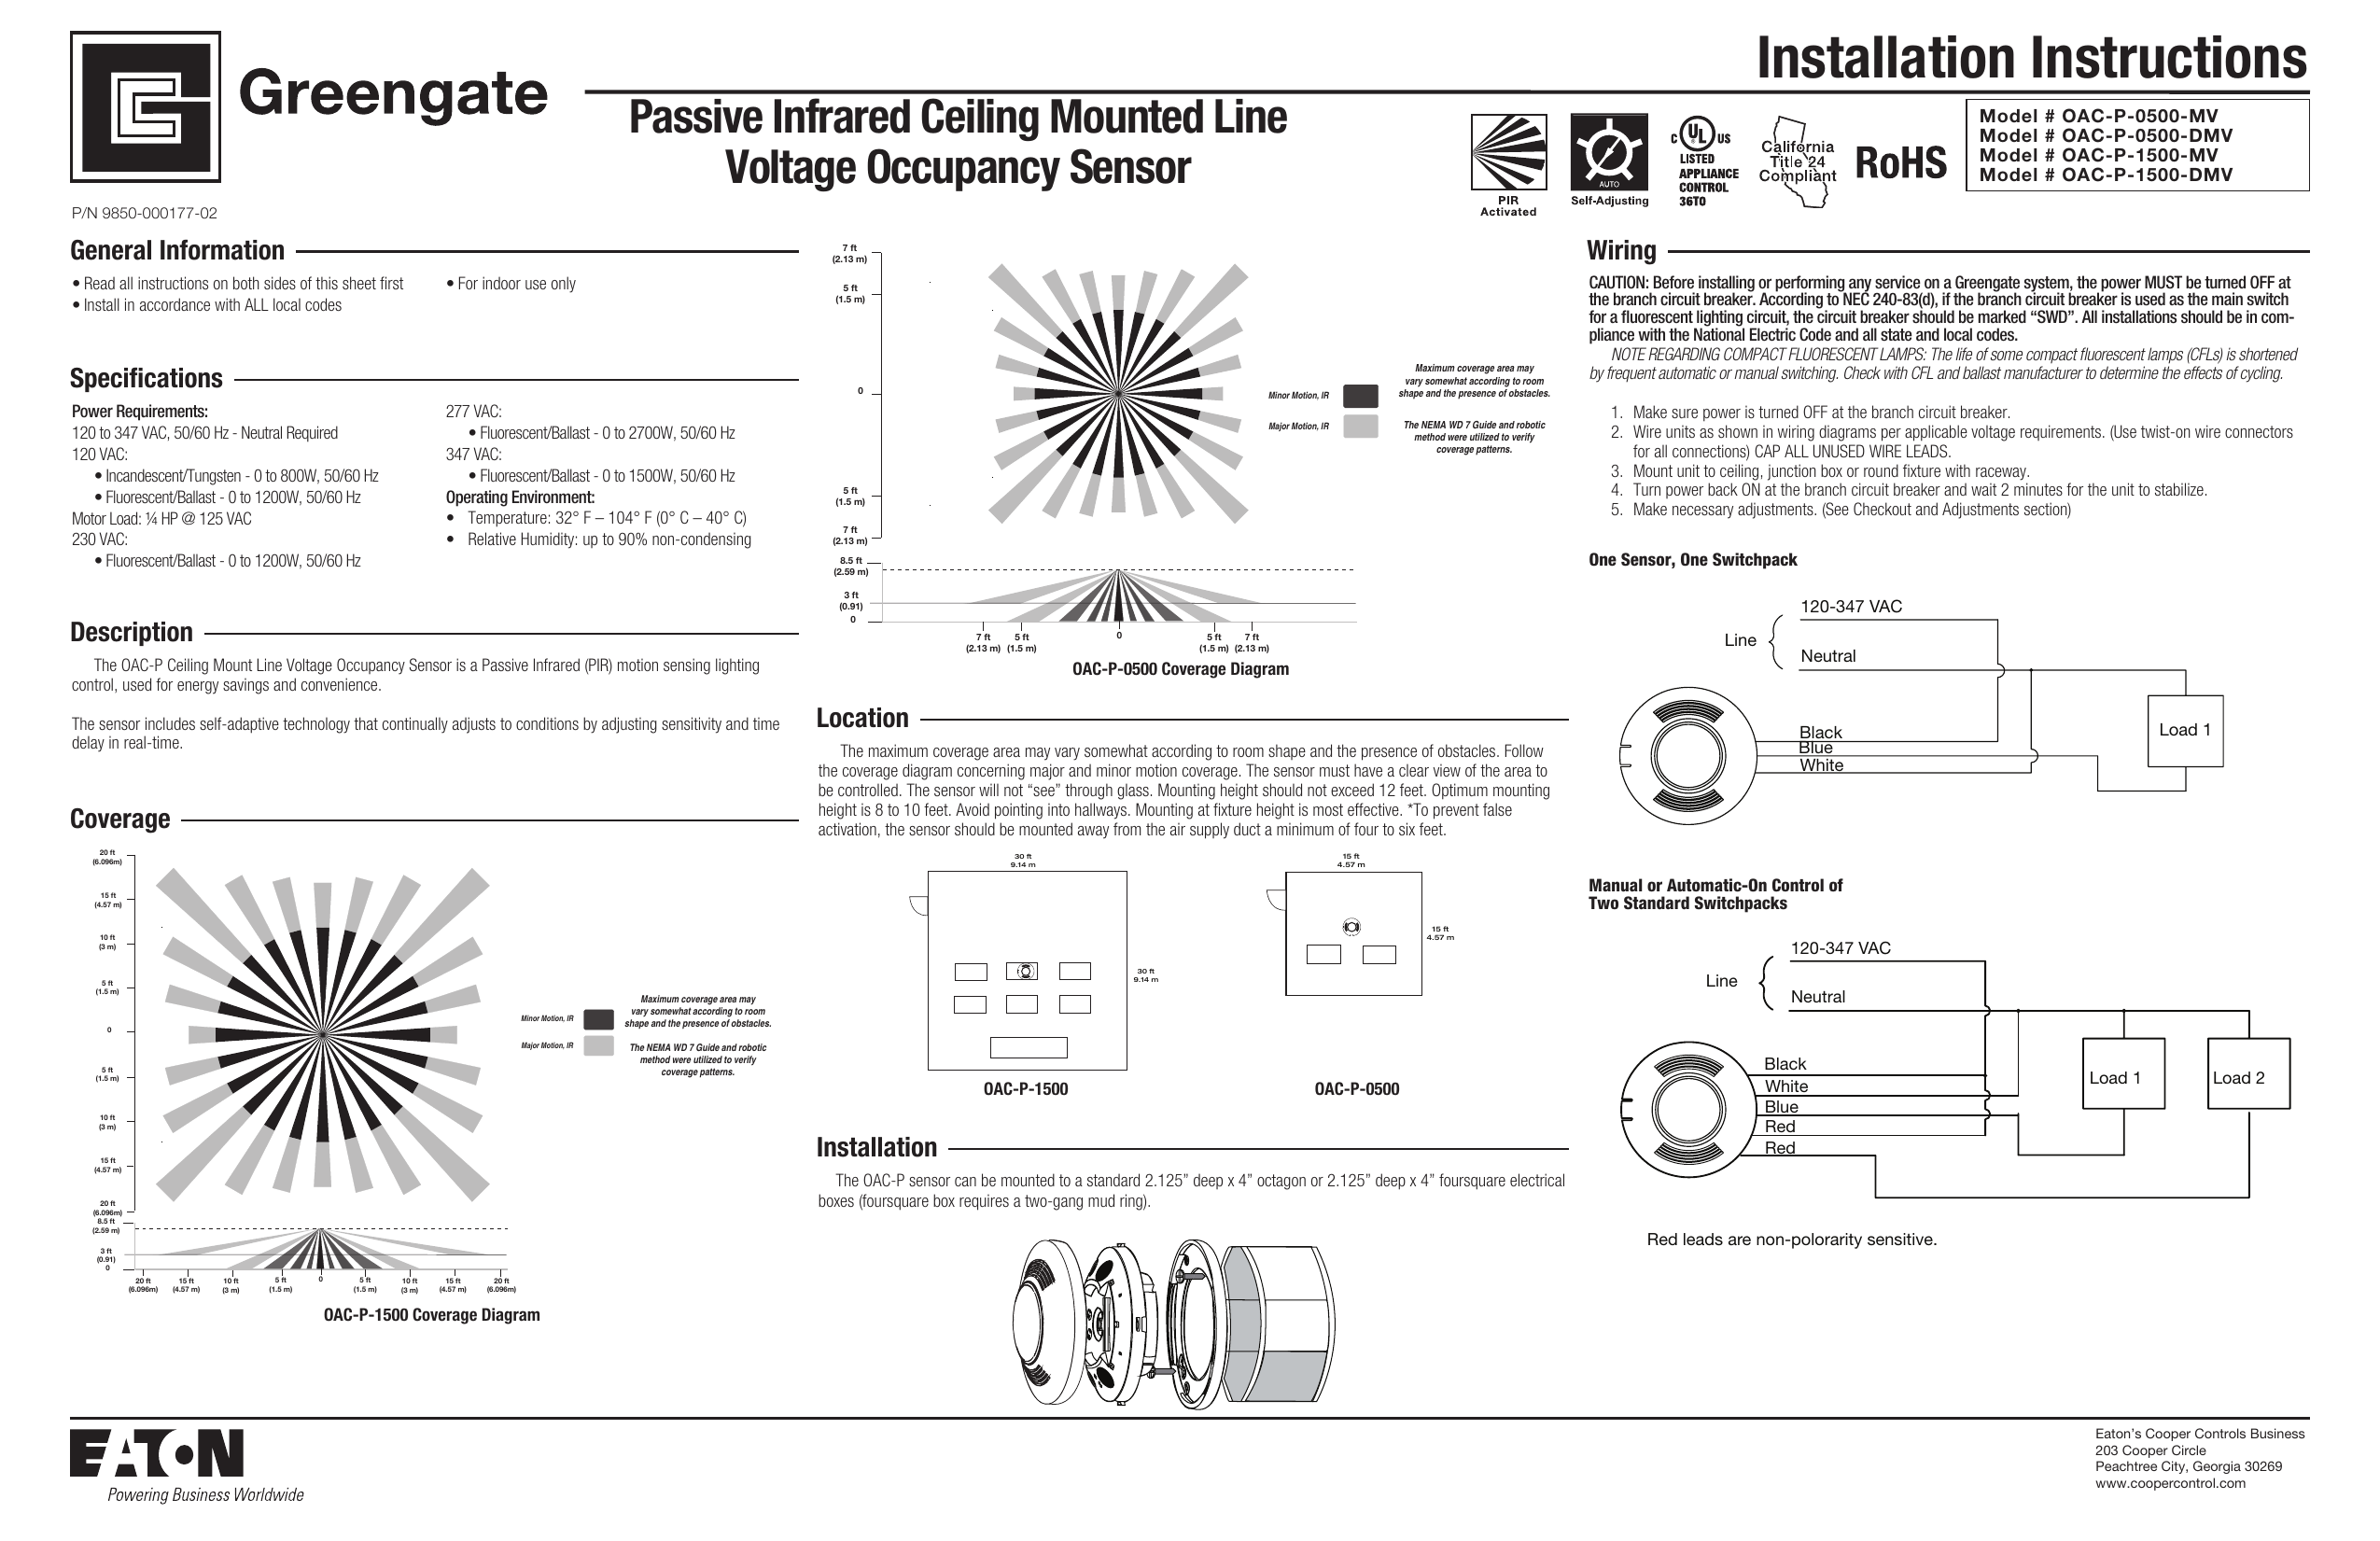 Installation Instructions Passive Infrared Ceiling Mounted Line Voltage  Occupancy Sensor Model # OAC-P-0500-MV